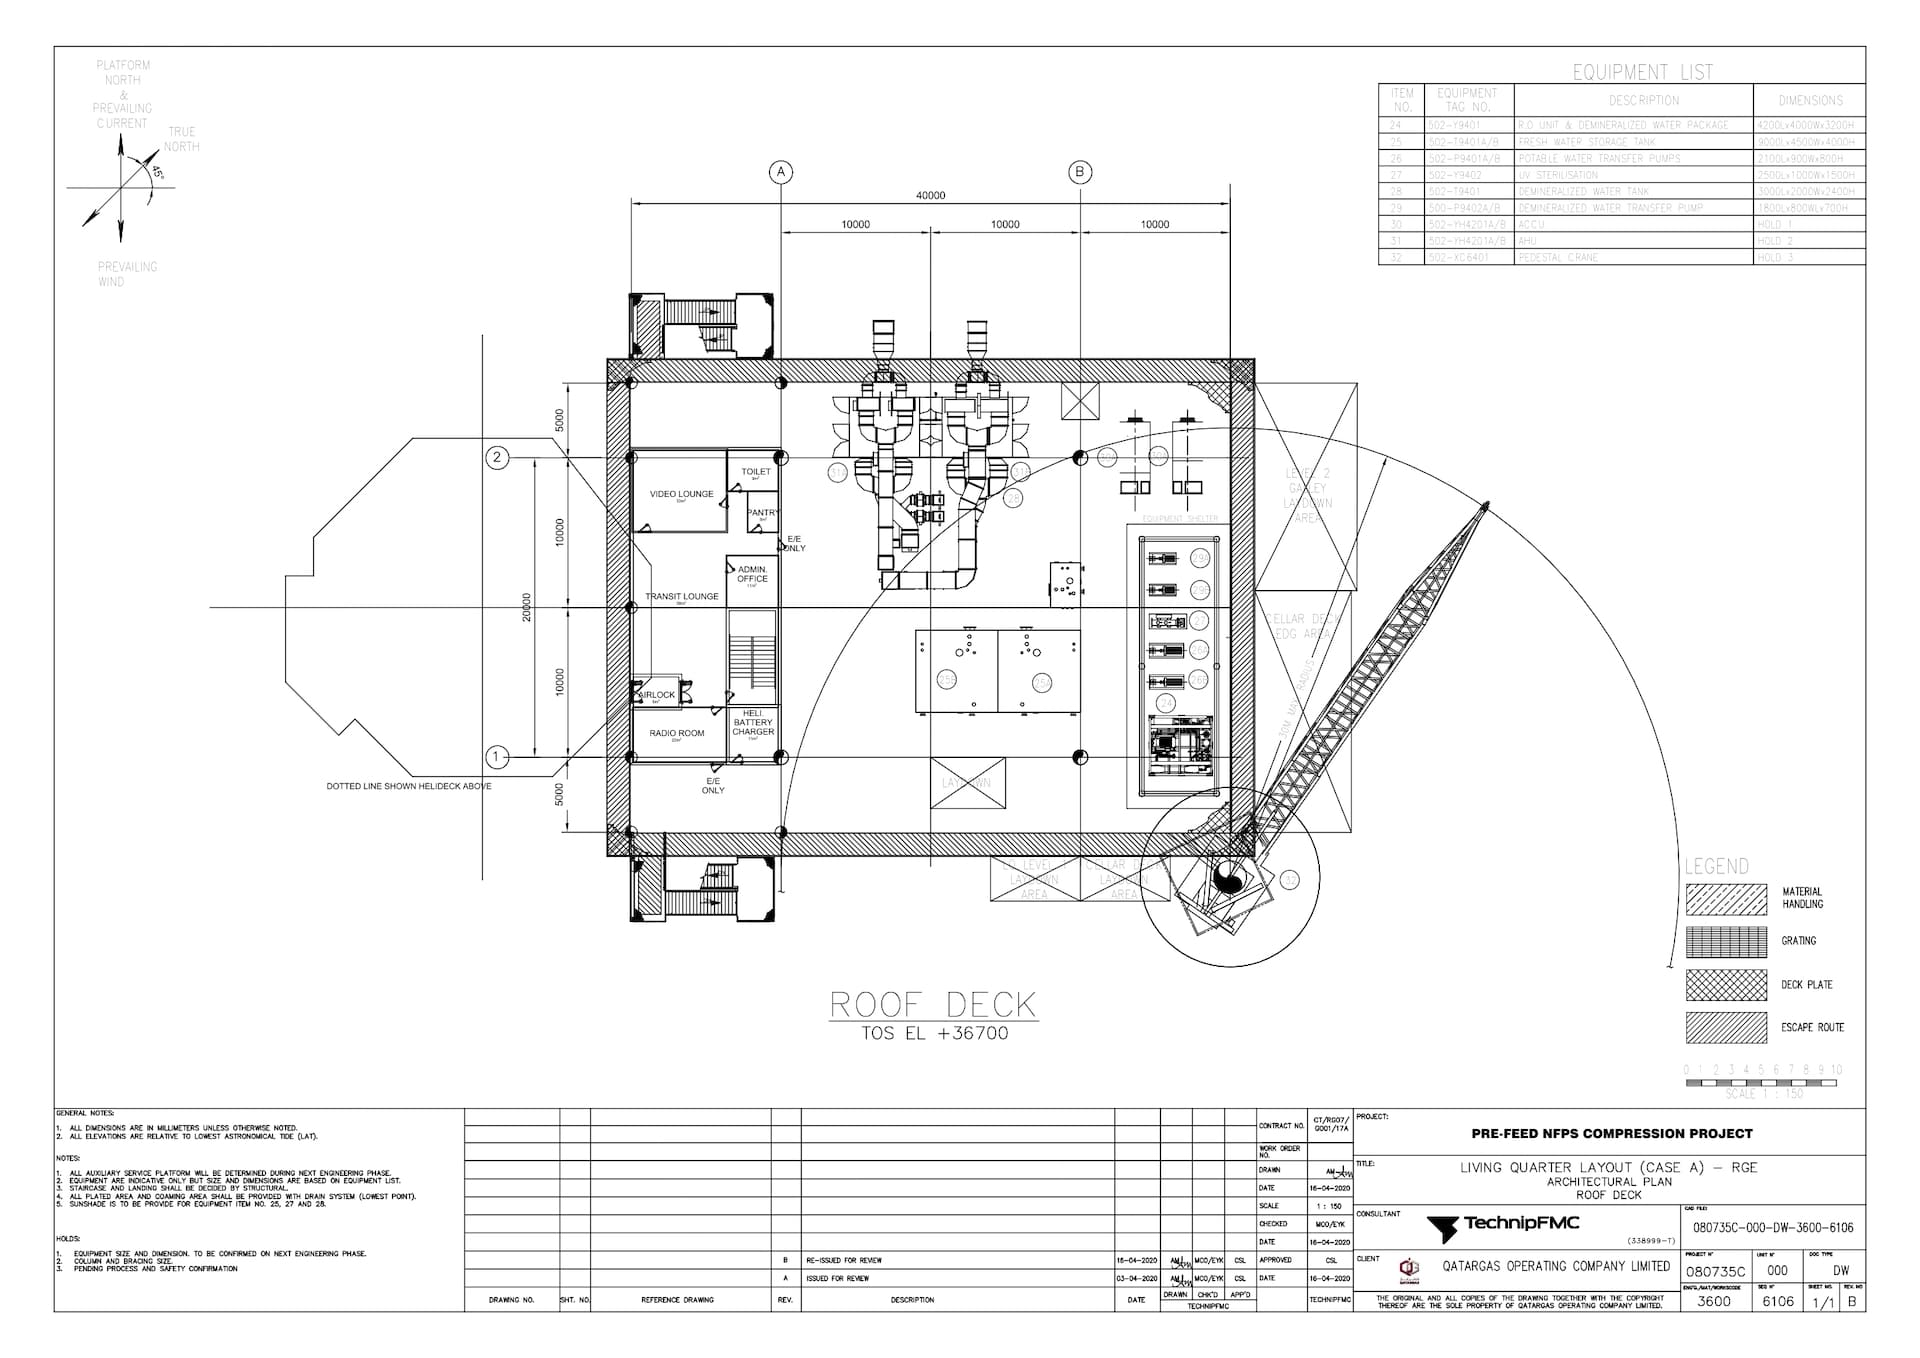 PRE-FEED-NFPS-080735C-000-DW-3600-6106_Rev B LQ Layout (Case A) - RGE - Architectural Plan - Roof Deck_page-0001